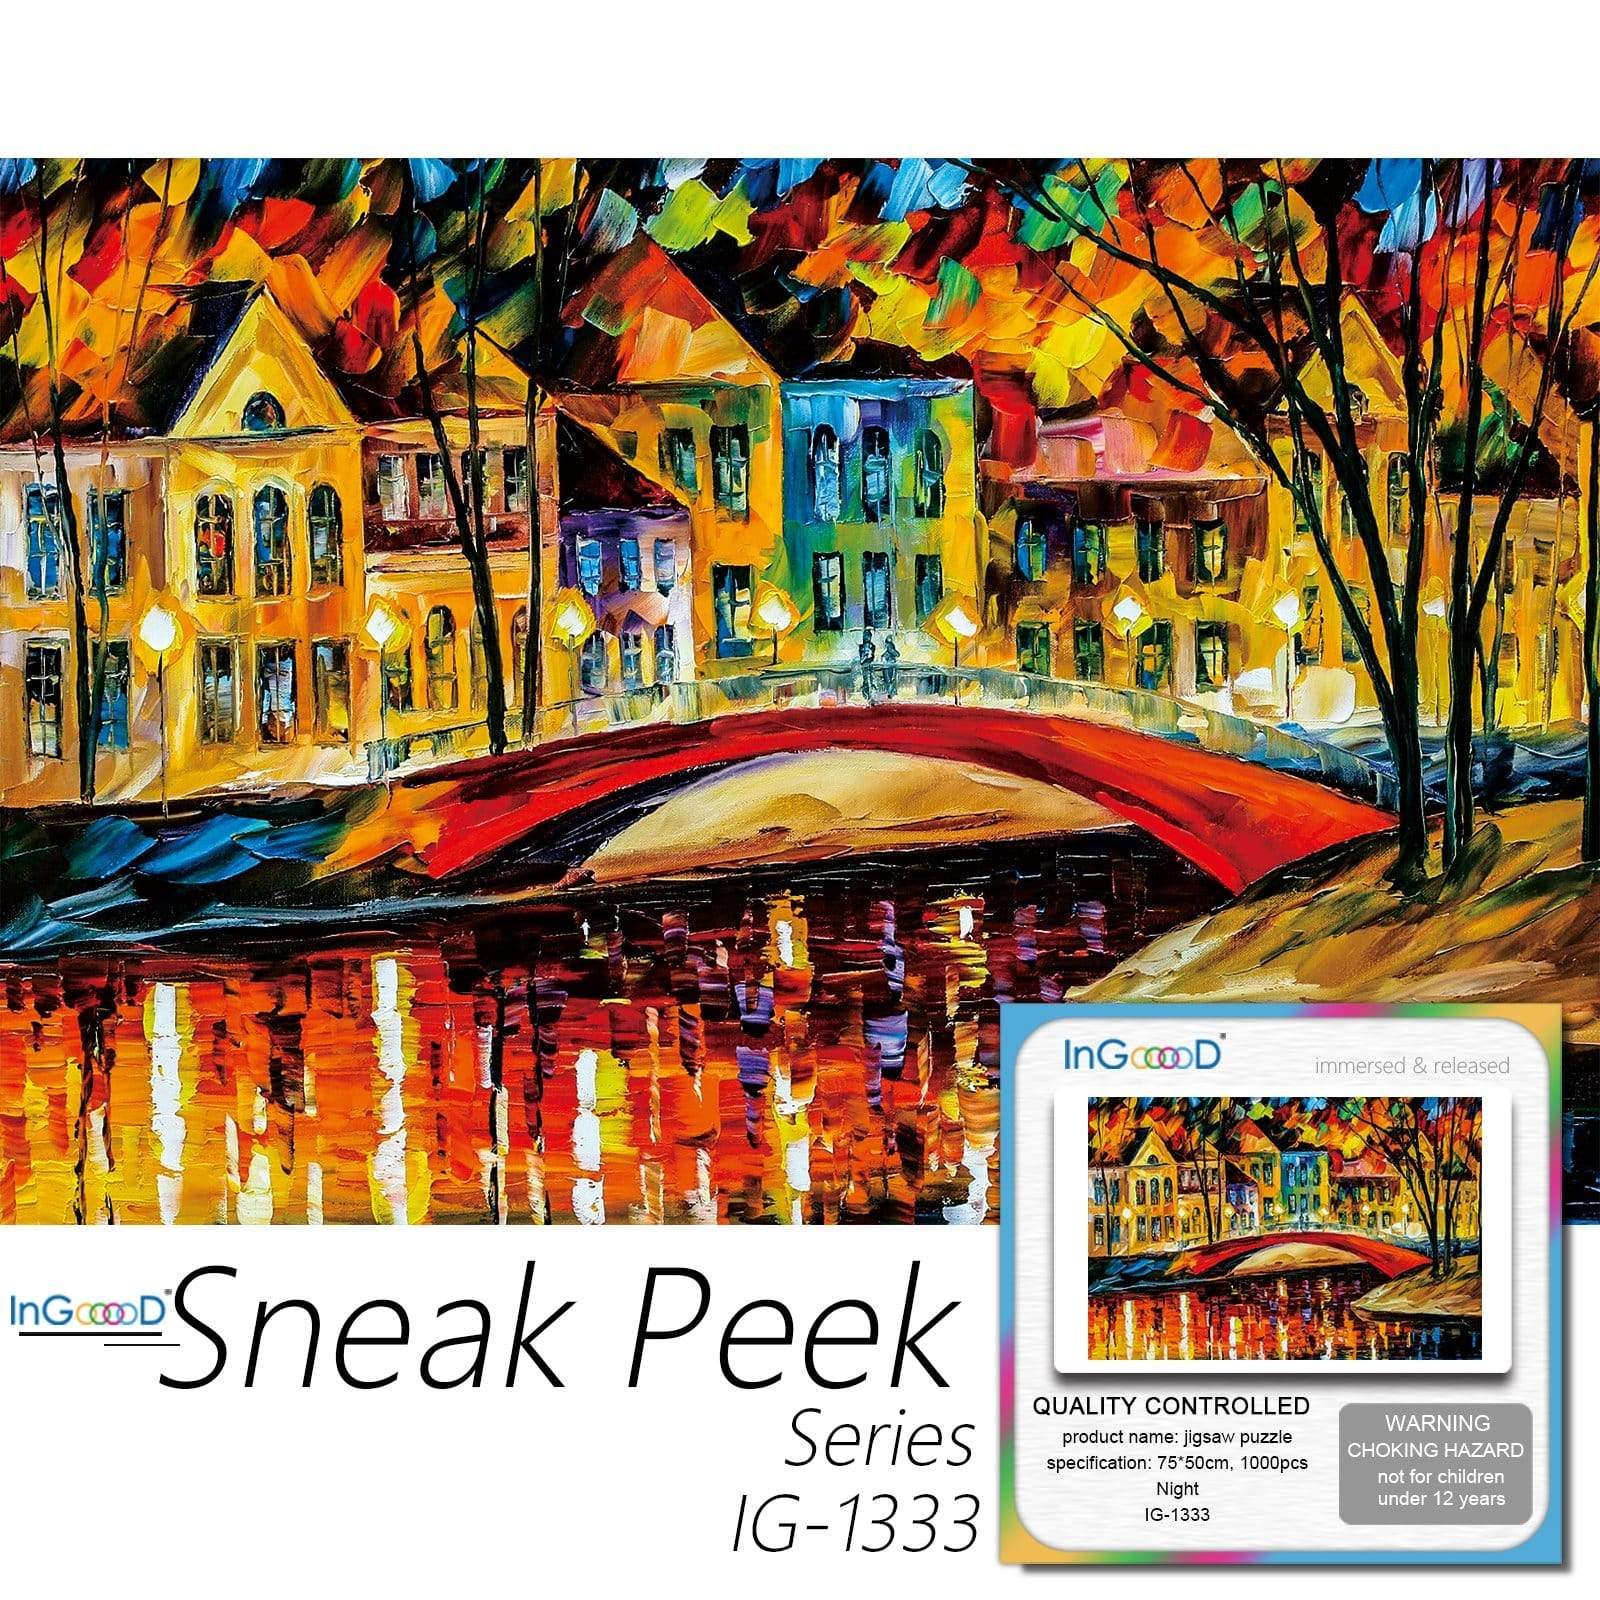 Ingooood-Jigsaw Puzzle 1000 Pieces-Sneak Peek Series-Night_IG-1333 Entertainment Toys for Adult Special Graduation or Birthday Gift Home Decor - Ingooood